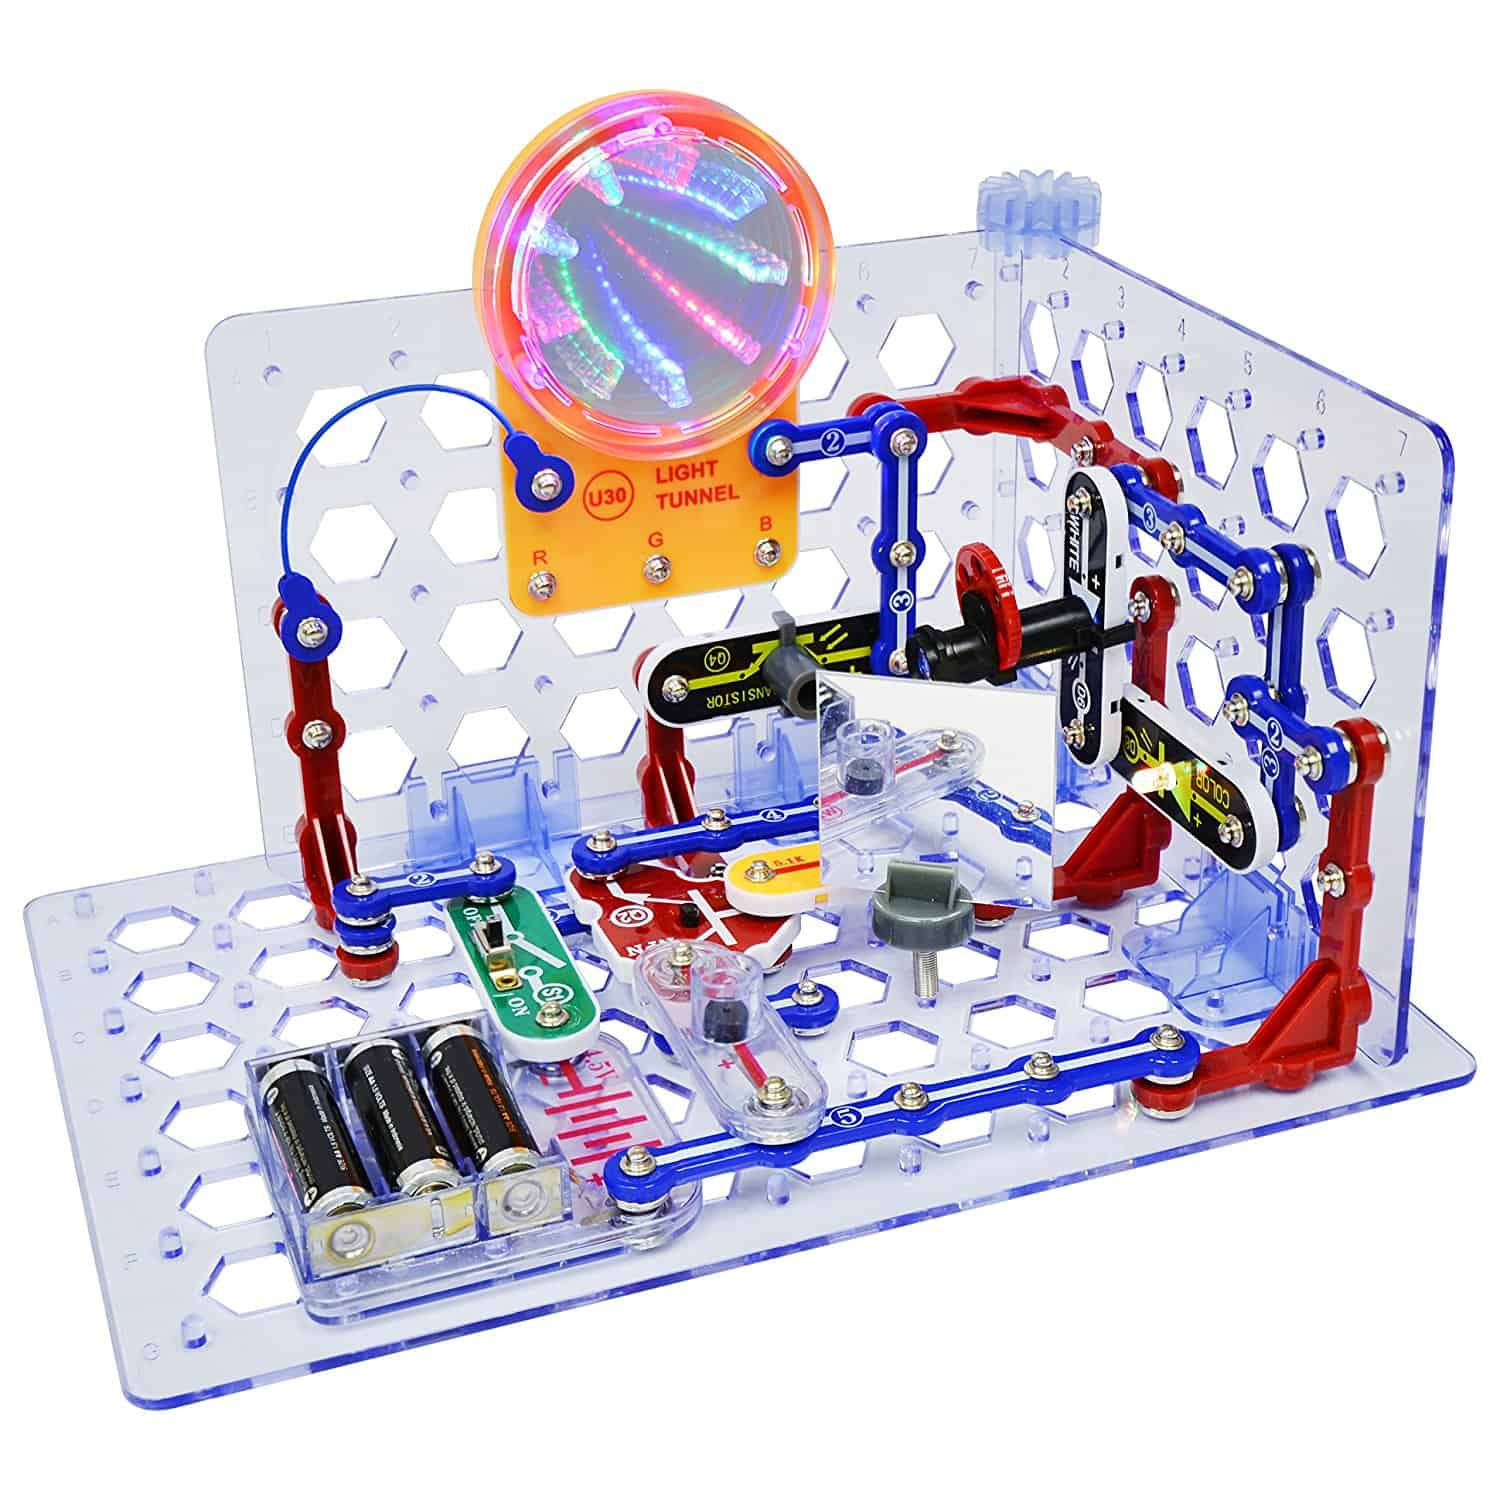 This awesome new addition to the snap circuits family is a great electronics STEM toy for tweens in 2017